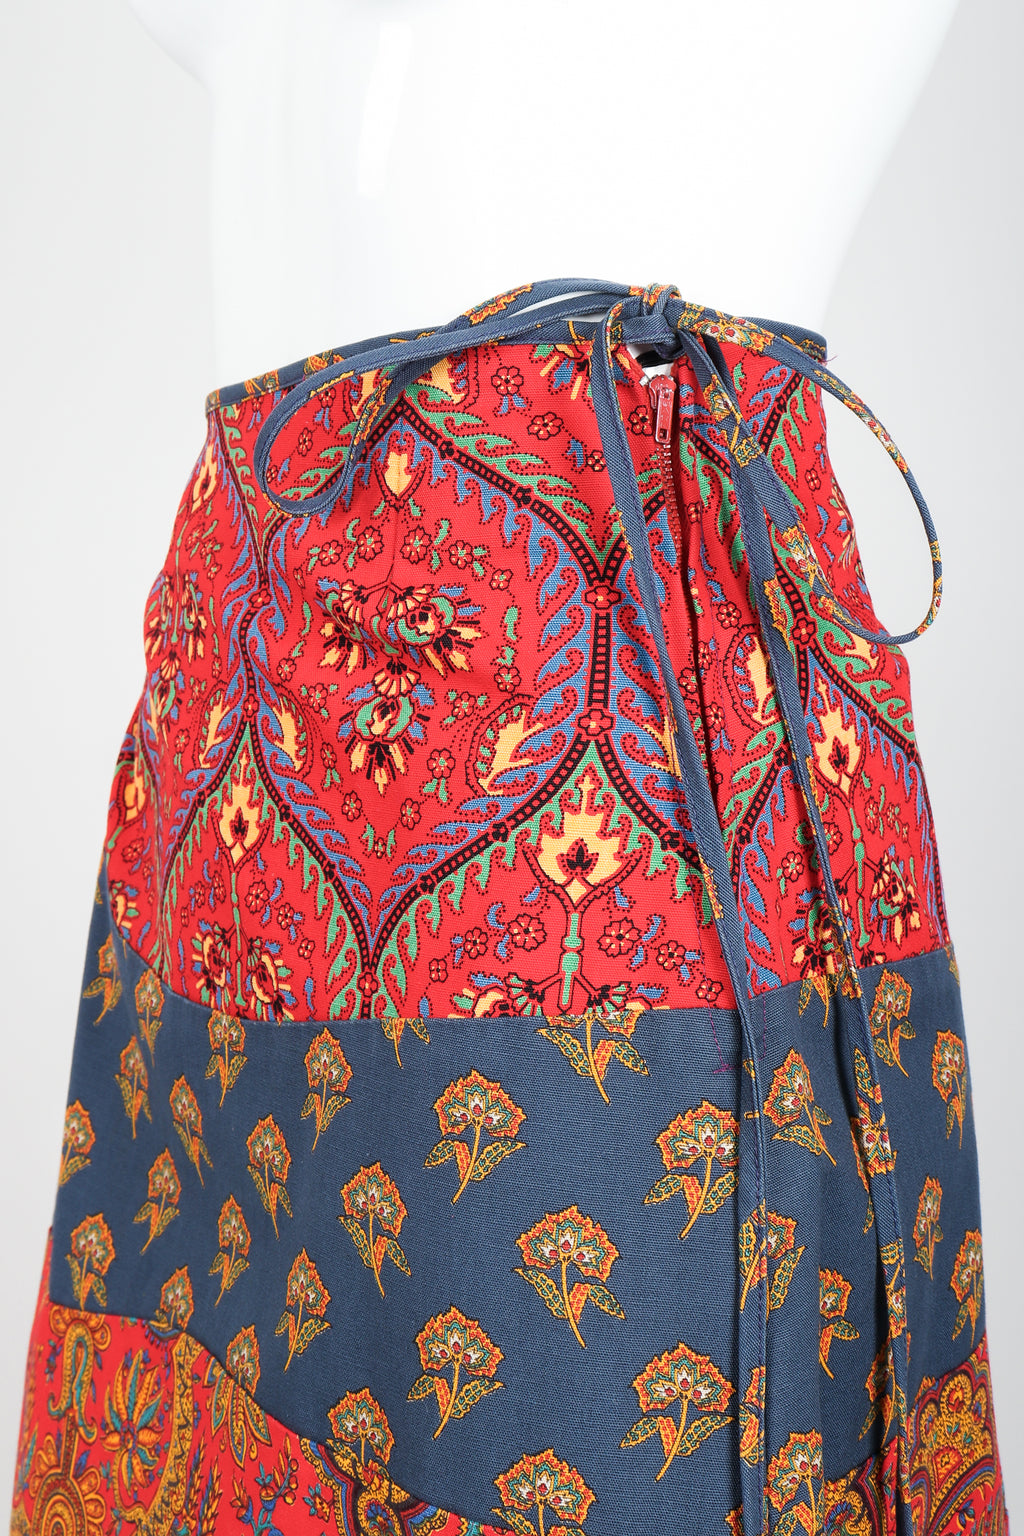 Vintage Anne Klein Flower & Paisley Tie Wrap Skirt Waist at Recess LA